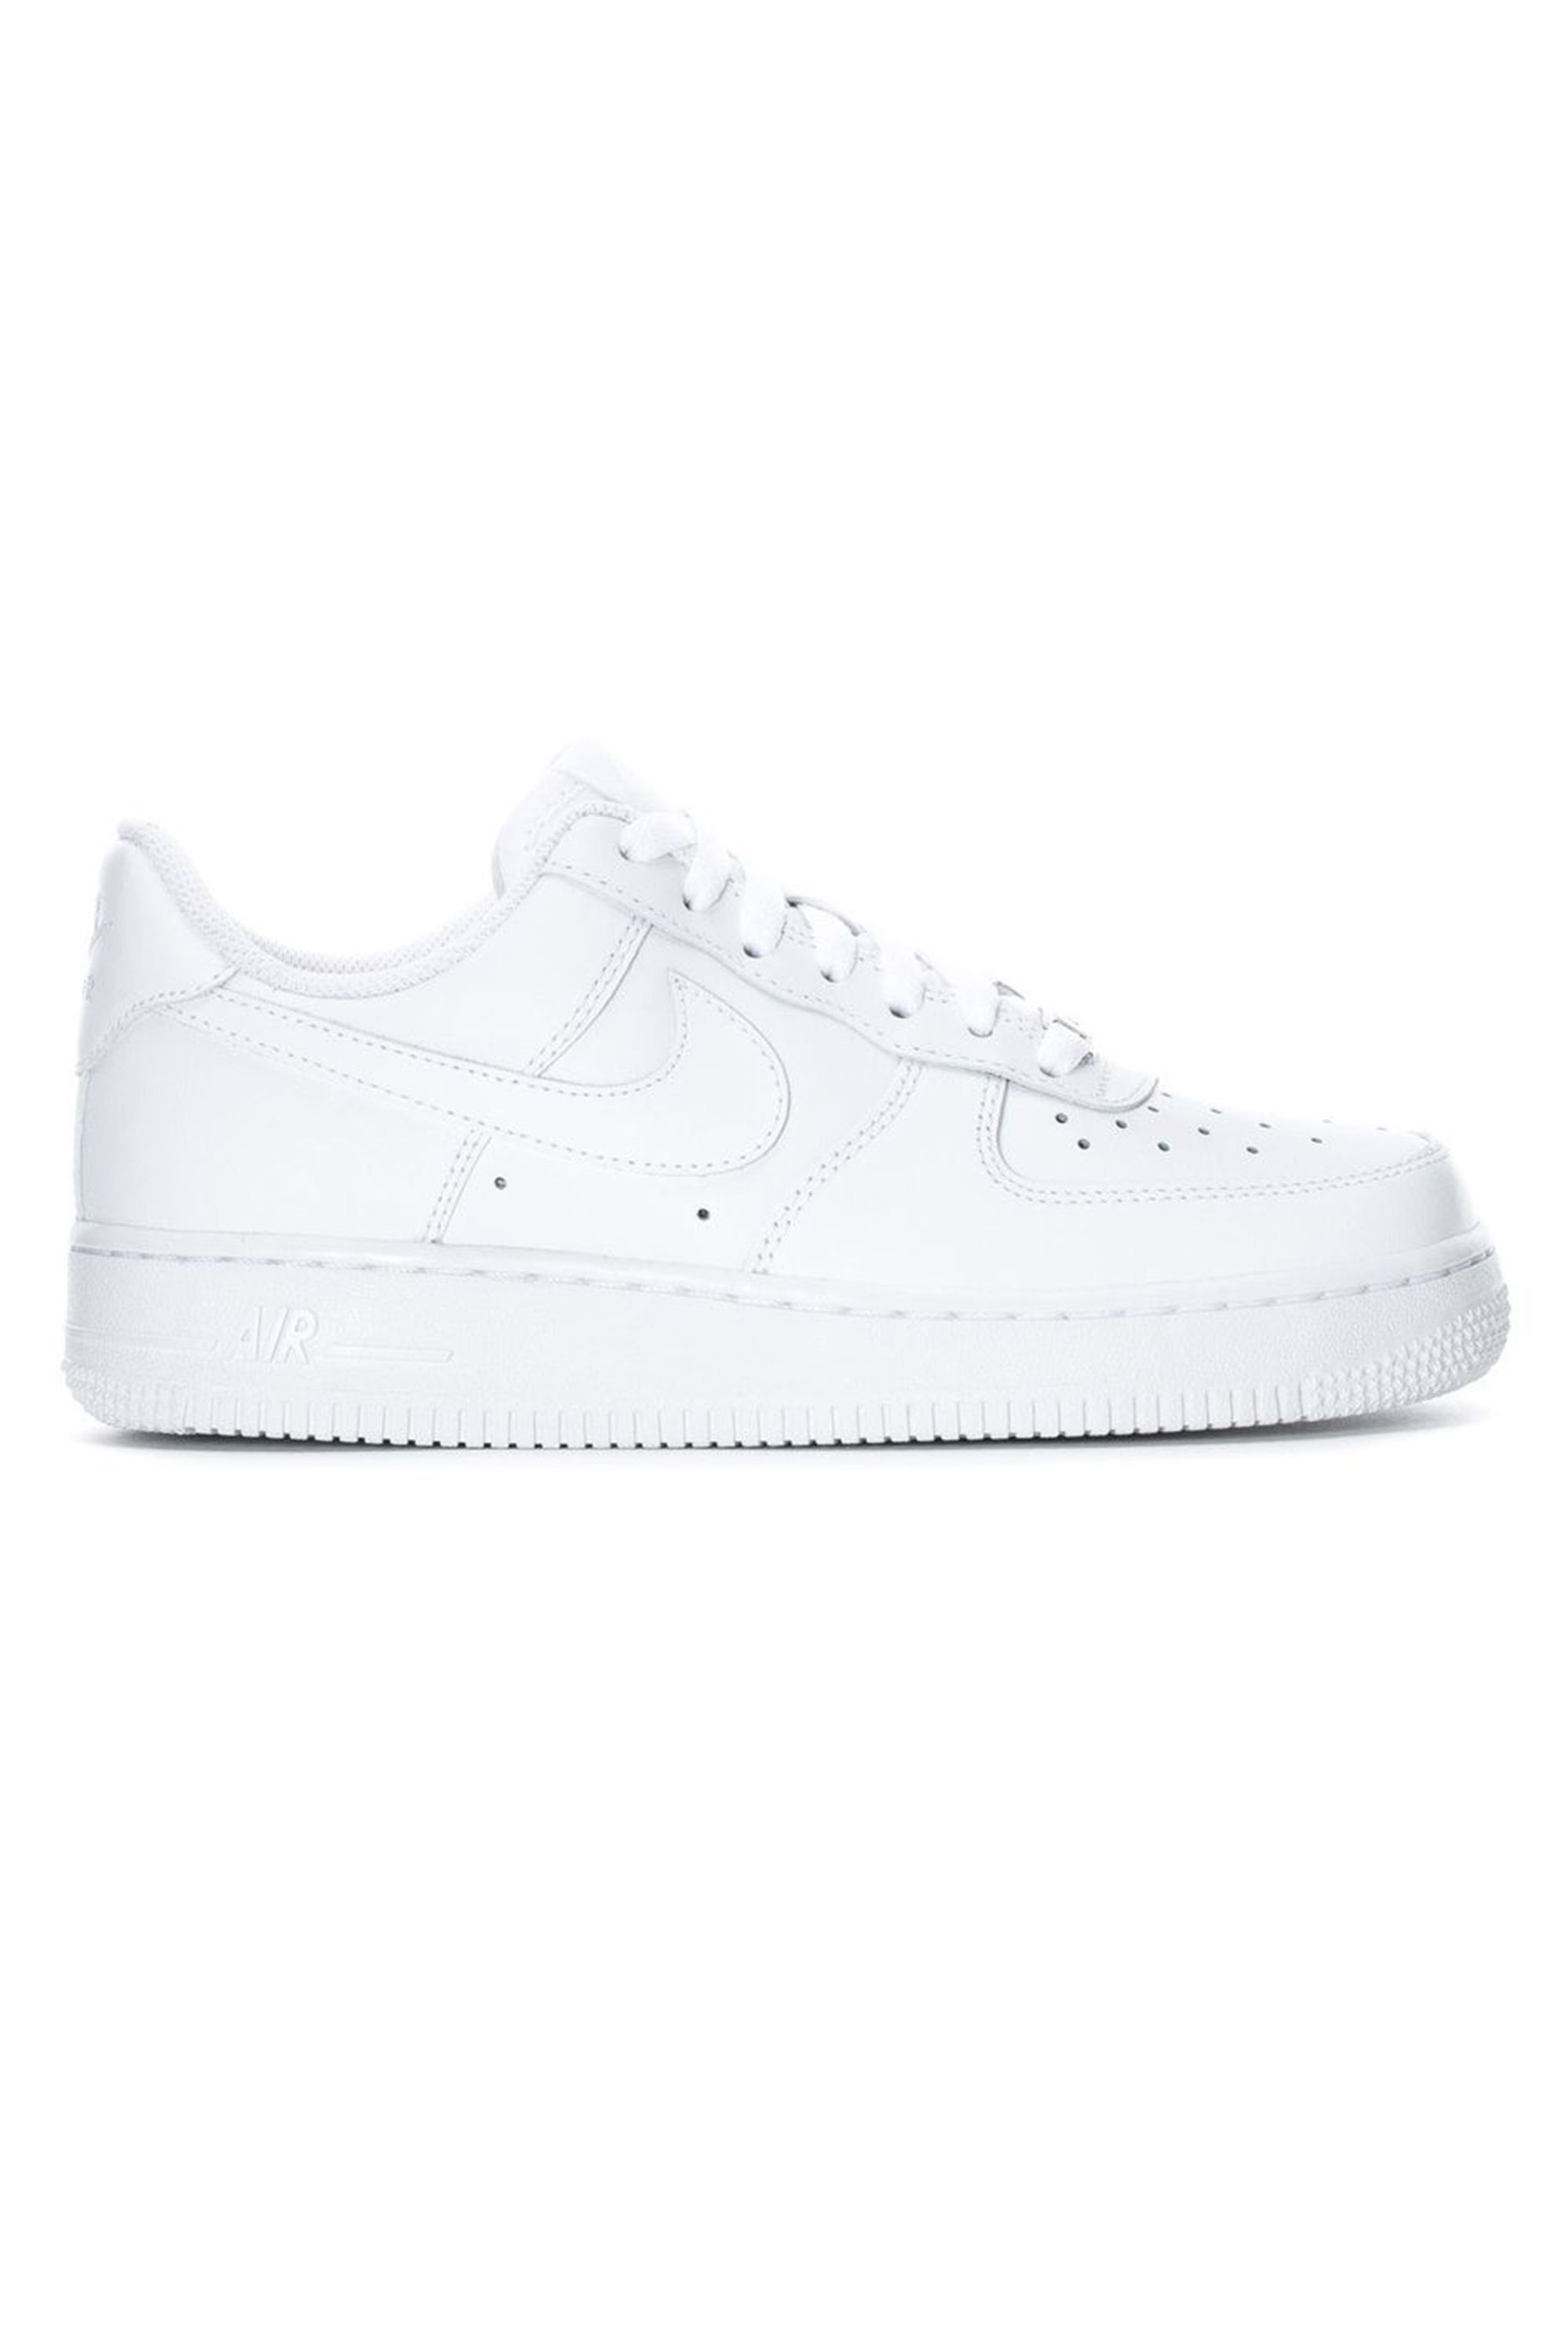 17 Best White Sneakers for 2020 Classic White Shoes That